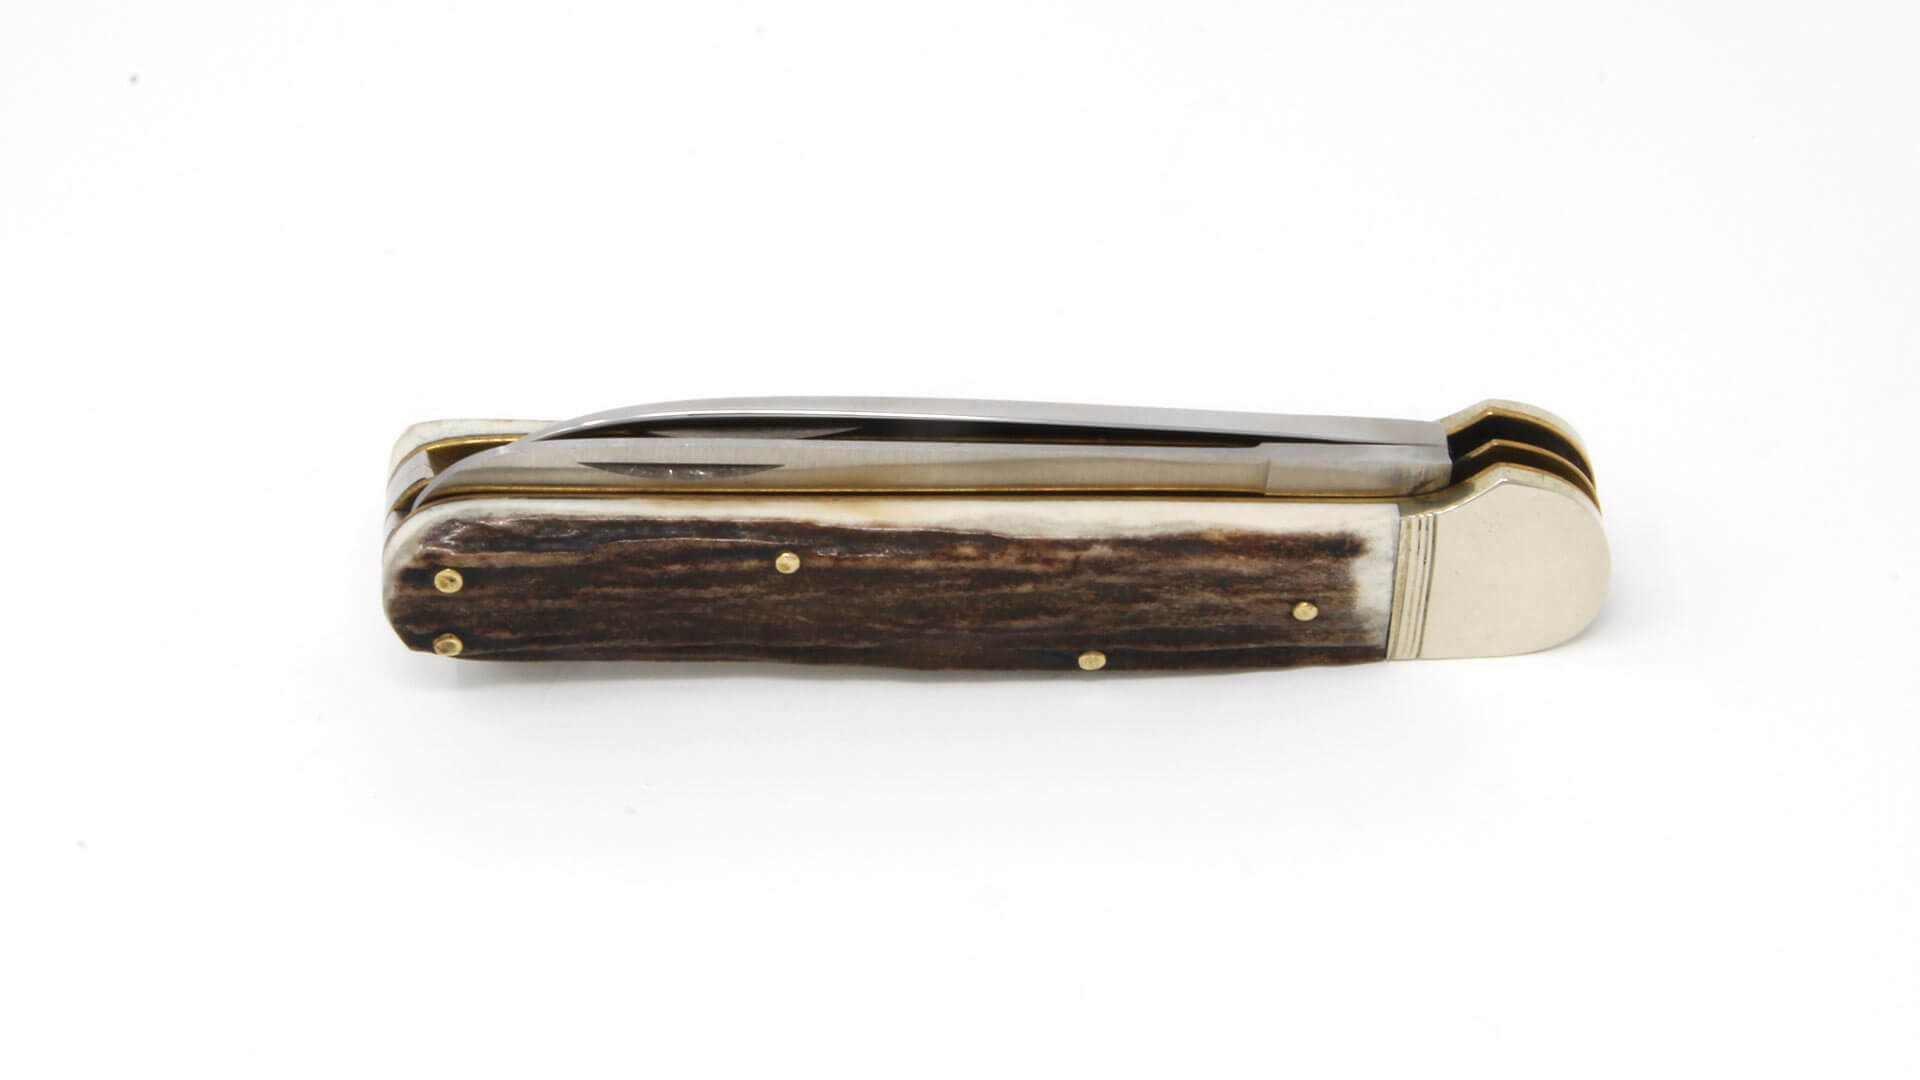 Hubertus Series 13 Hunting Pocket Knife Solingen with saw folded